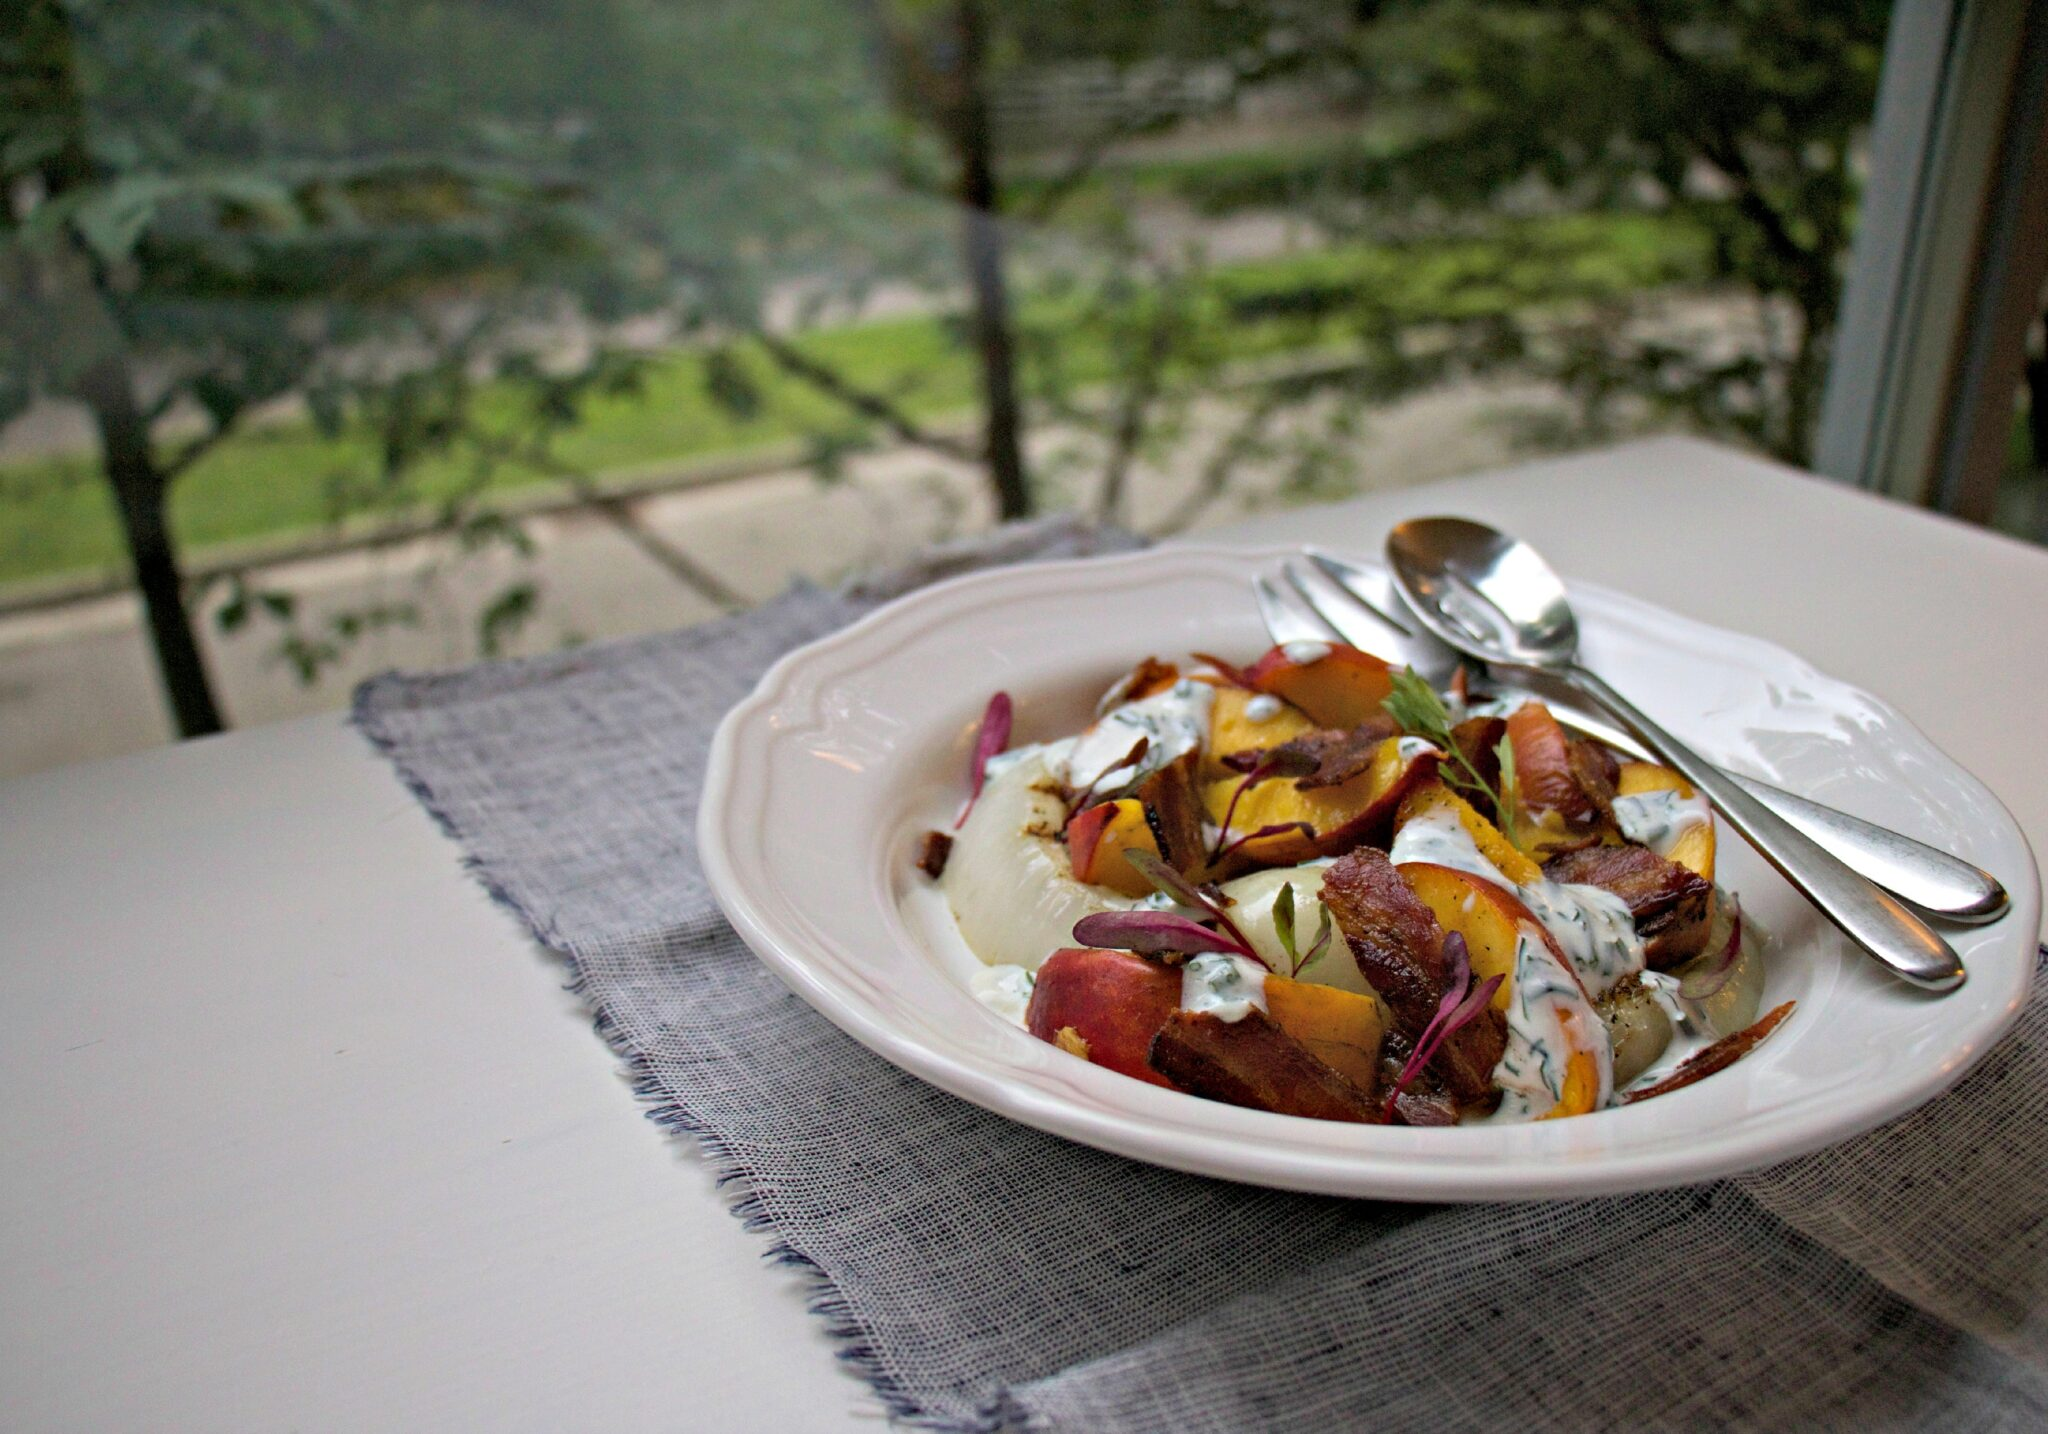 Grilled Peaches and Onion Salad with Buttermilk Dressing - My Kitchen Love